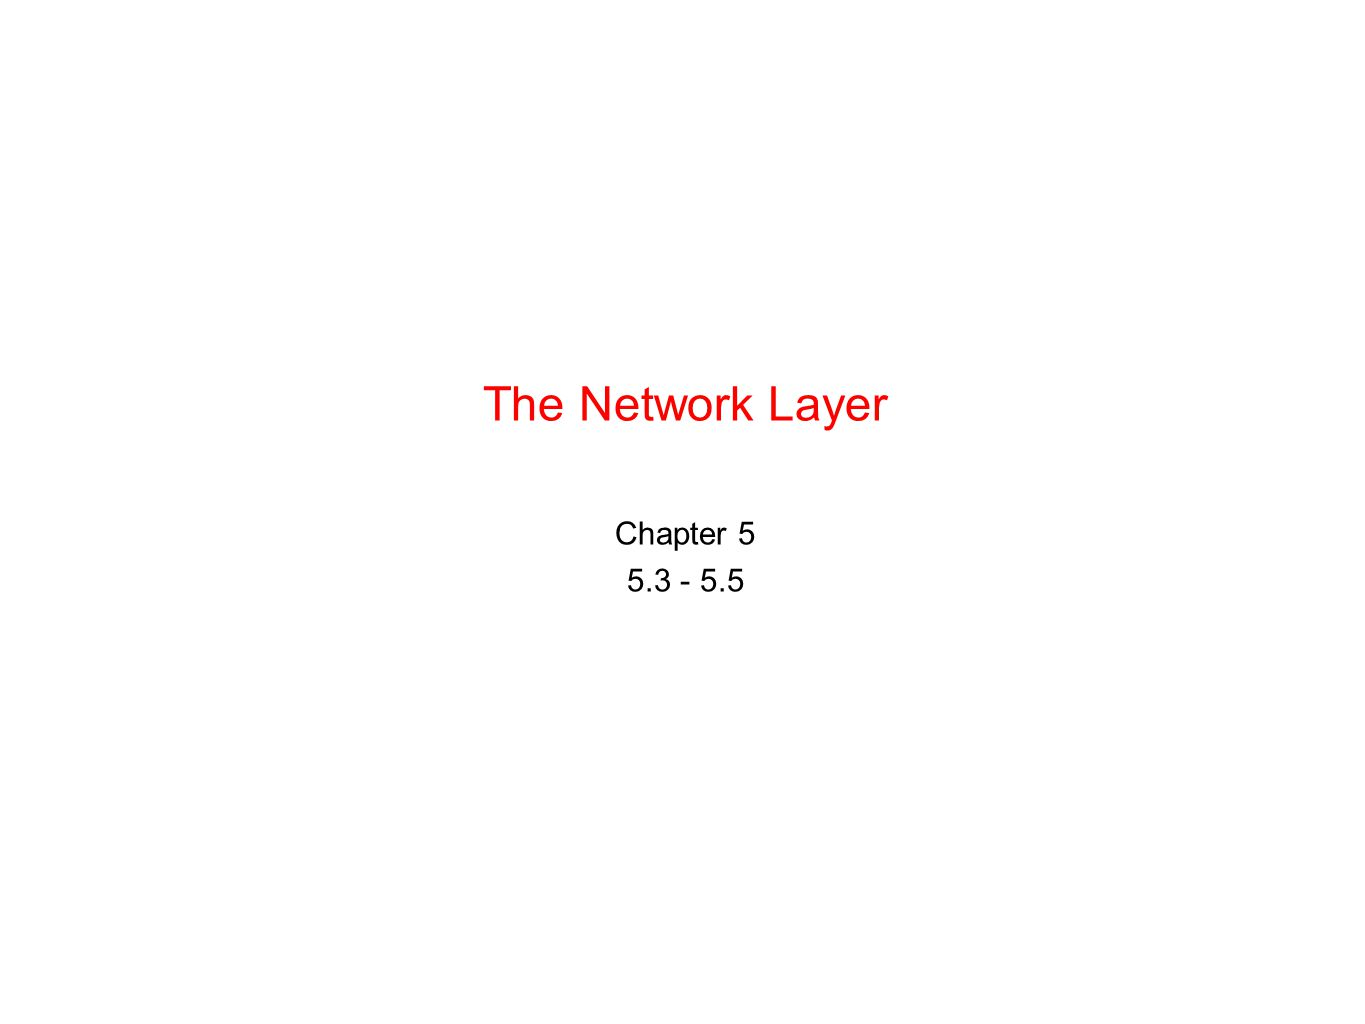 The Network Layer Chapter 5 5.3 - 5.5